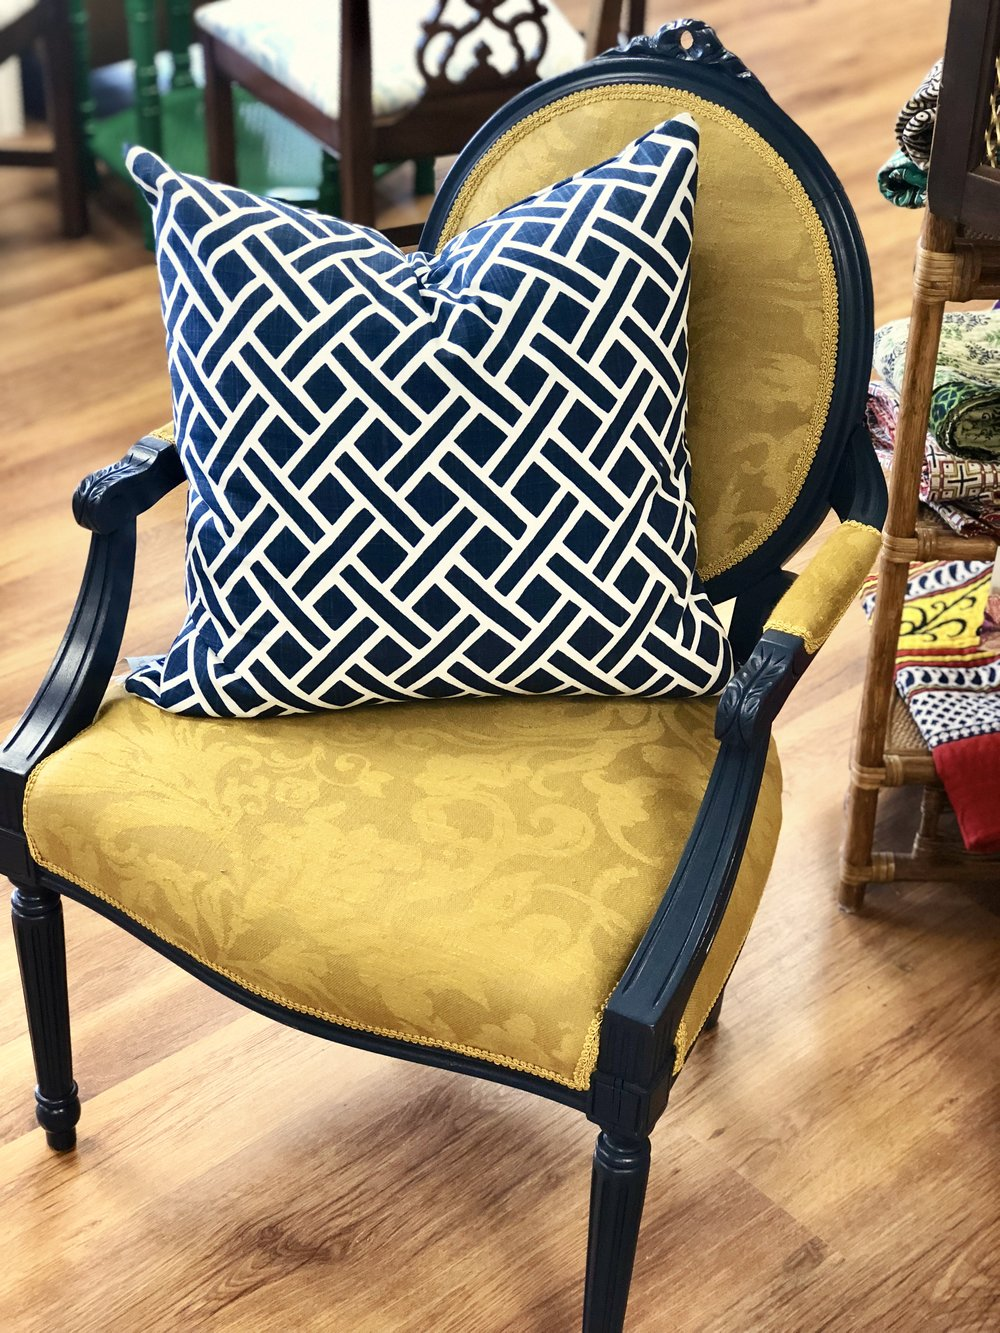 The damask fabric and the shape of the chair say traditional, but the golden hue of the covering and the geometric pillow make an updated statement.